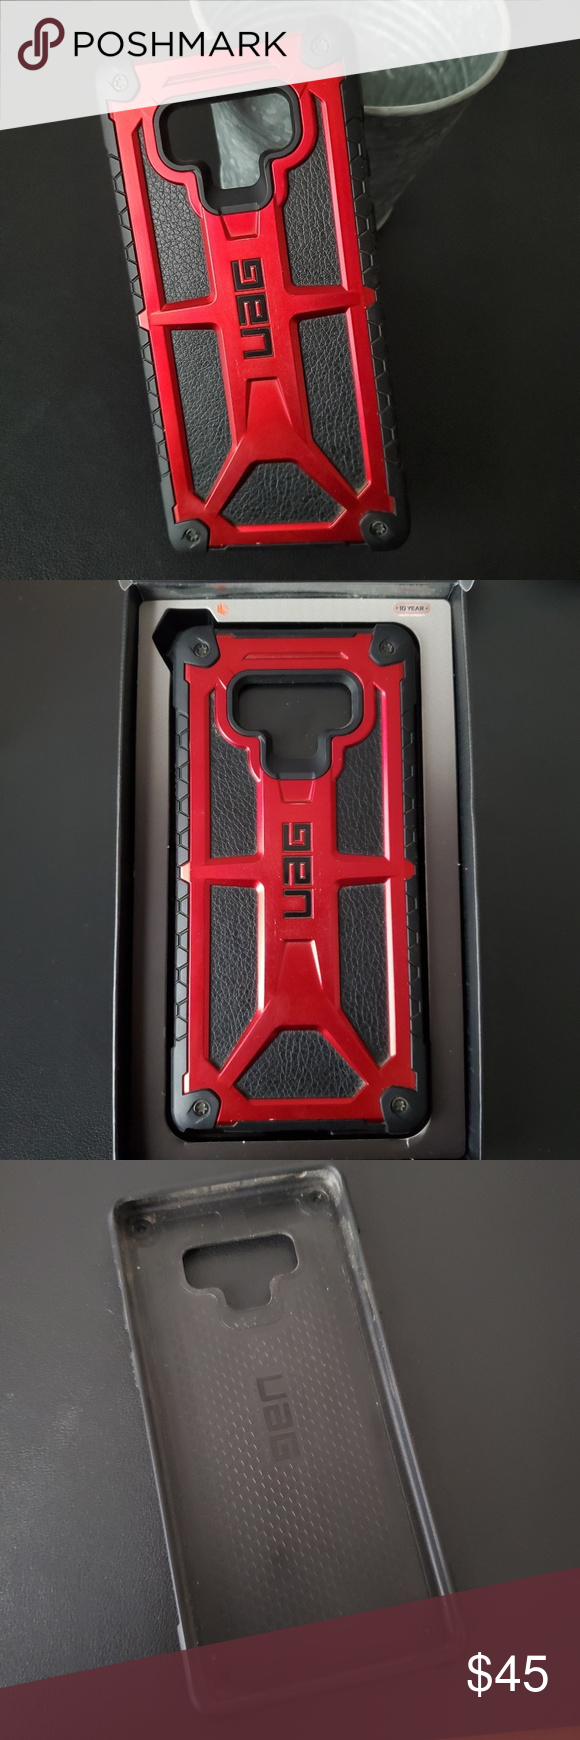 UAG - Urban Amor Gear Galaxy Note 9 Case Lightly used, like new, Red and black Monarch Series Case UAG Accessories Phone Cases